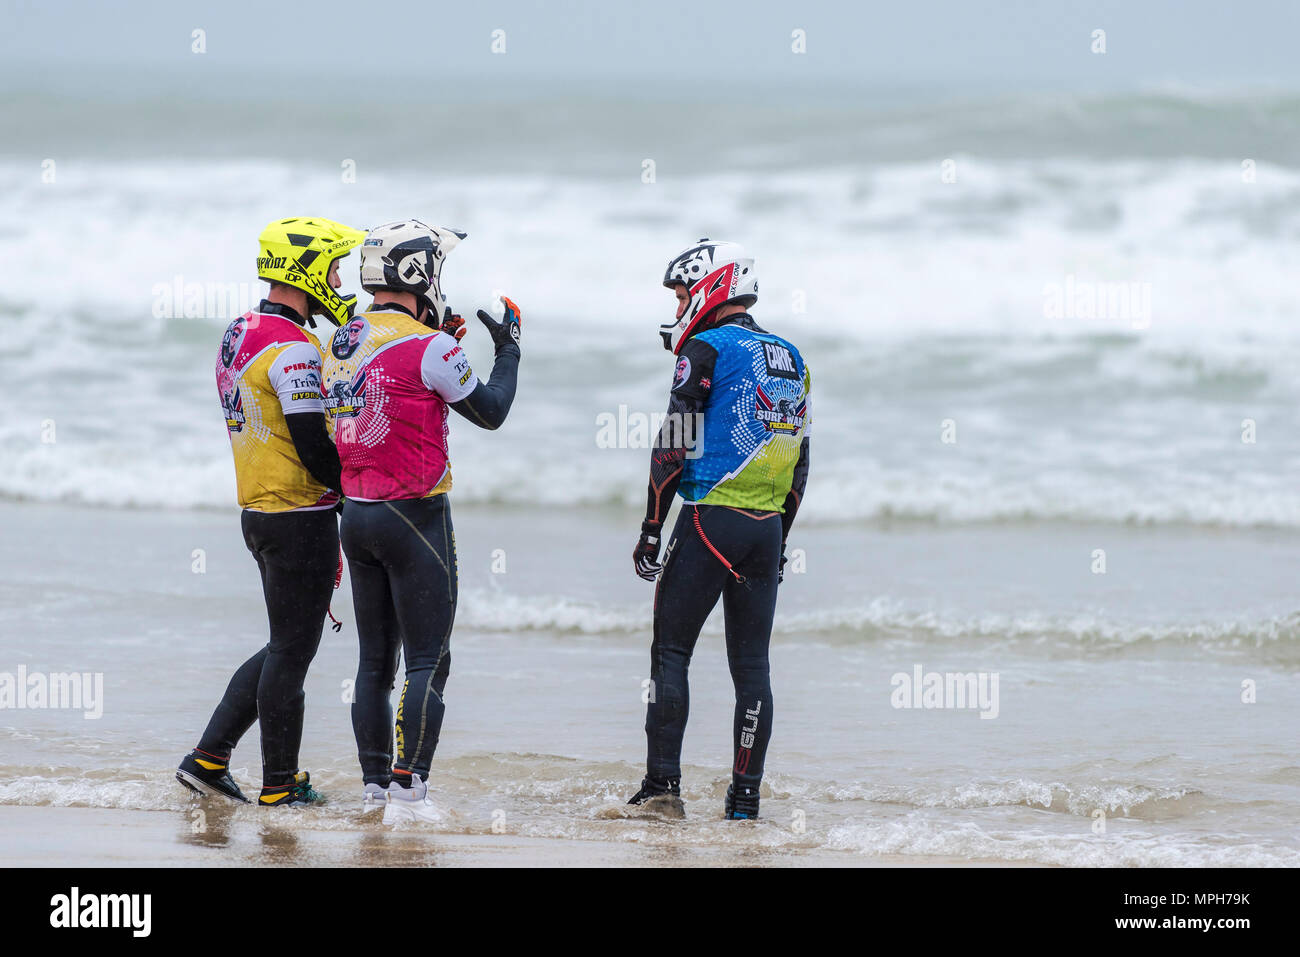 The Freeride World Jetski Championship at Fistral Beach in Newquay, Cornwall.  Competitors discussing tactics. - Stock Image